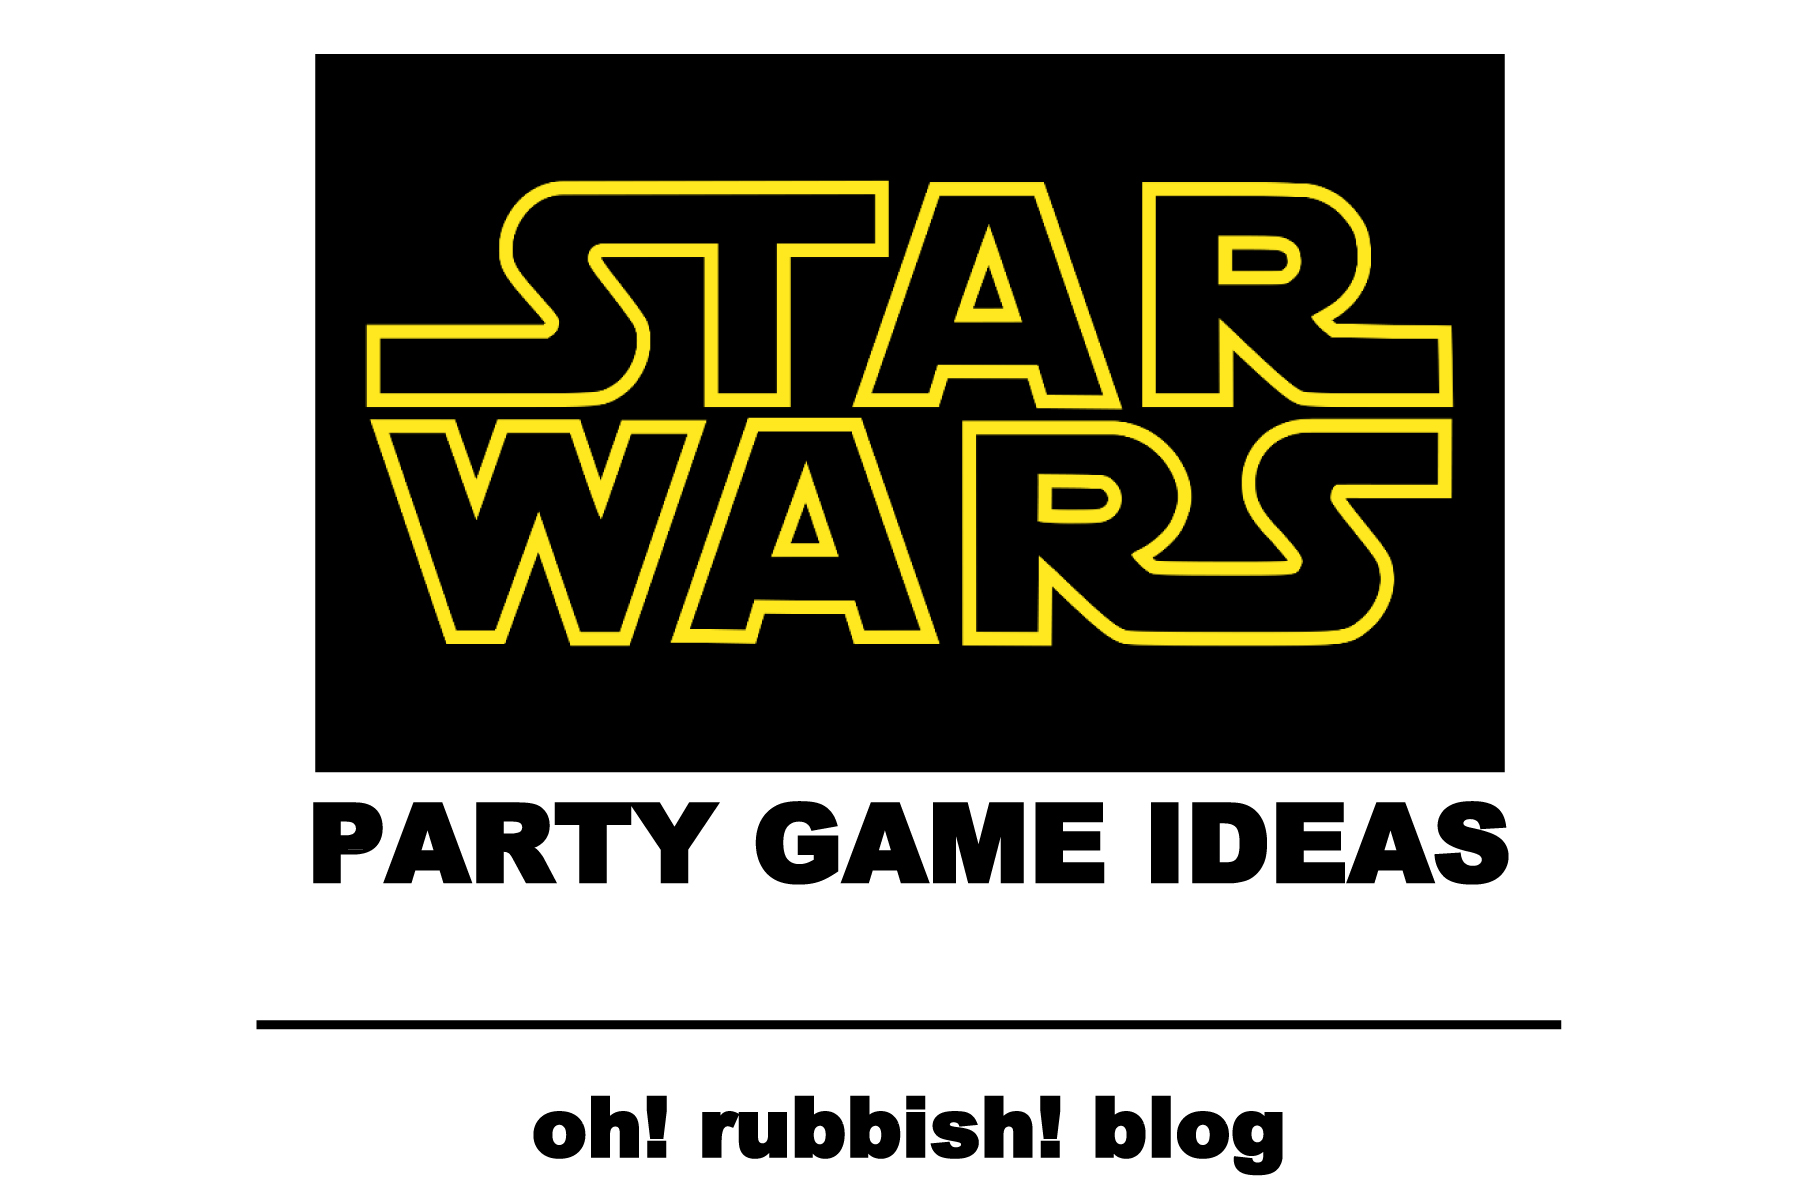 graphic relating to Star Wars Birthday Invitations Printable identified as Star Wars Birthday Get together Options :: Invitation, Online games